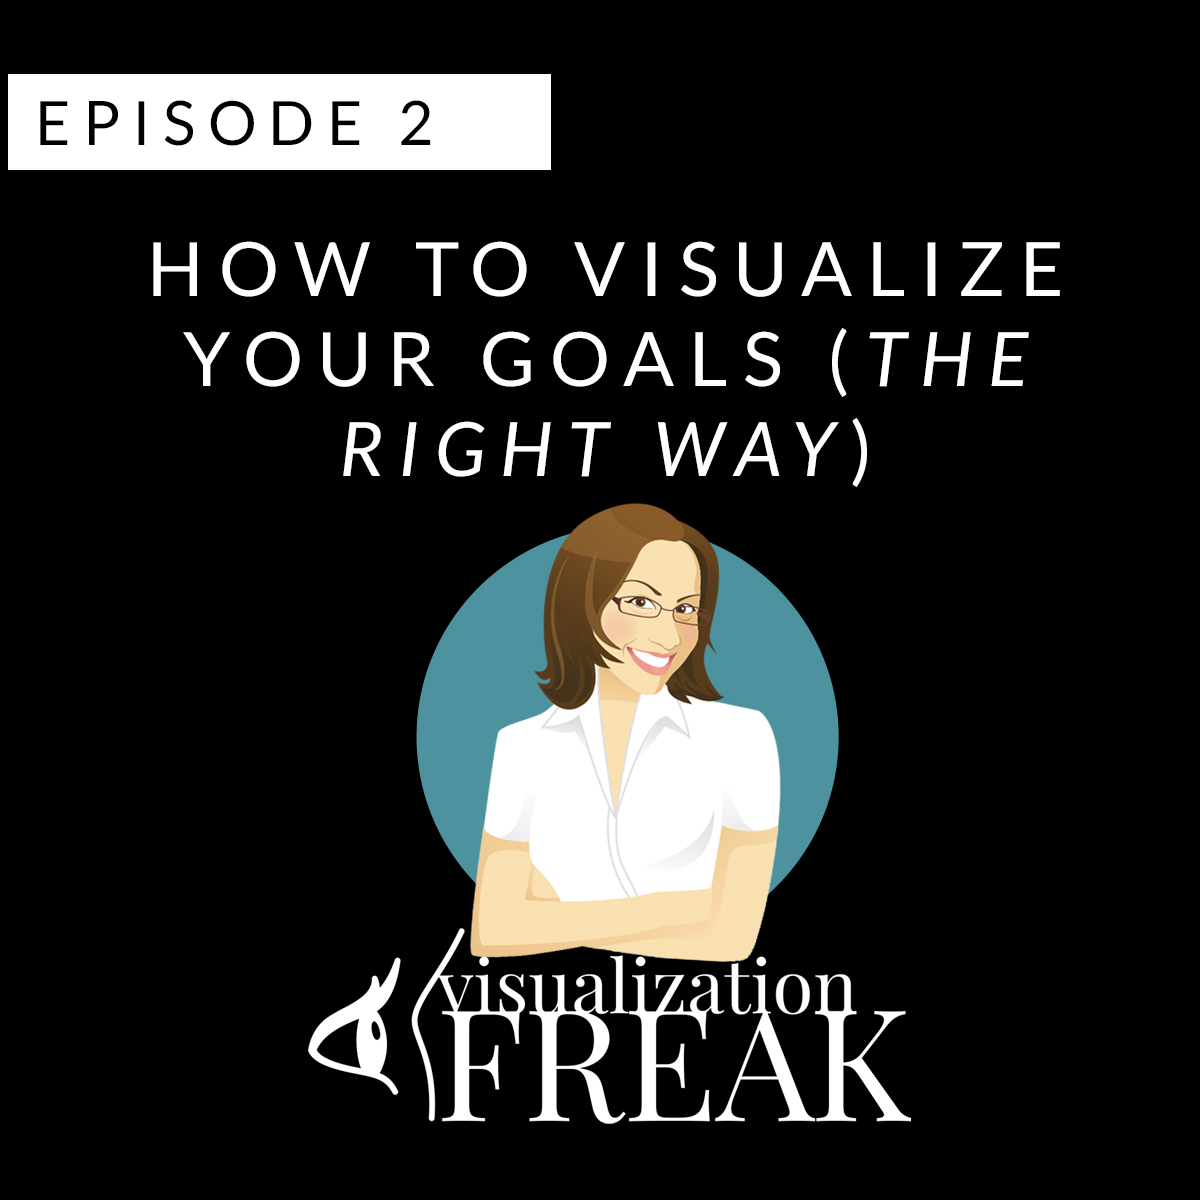 EPISODE 2: How to Visualize Your Goals - The RIGHT Way